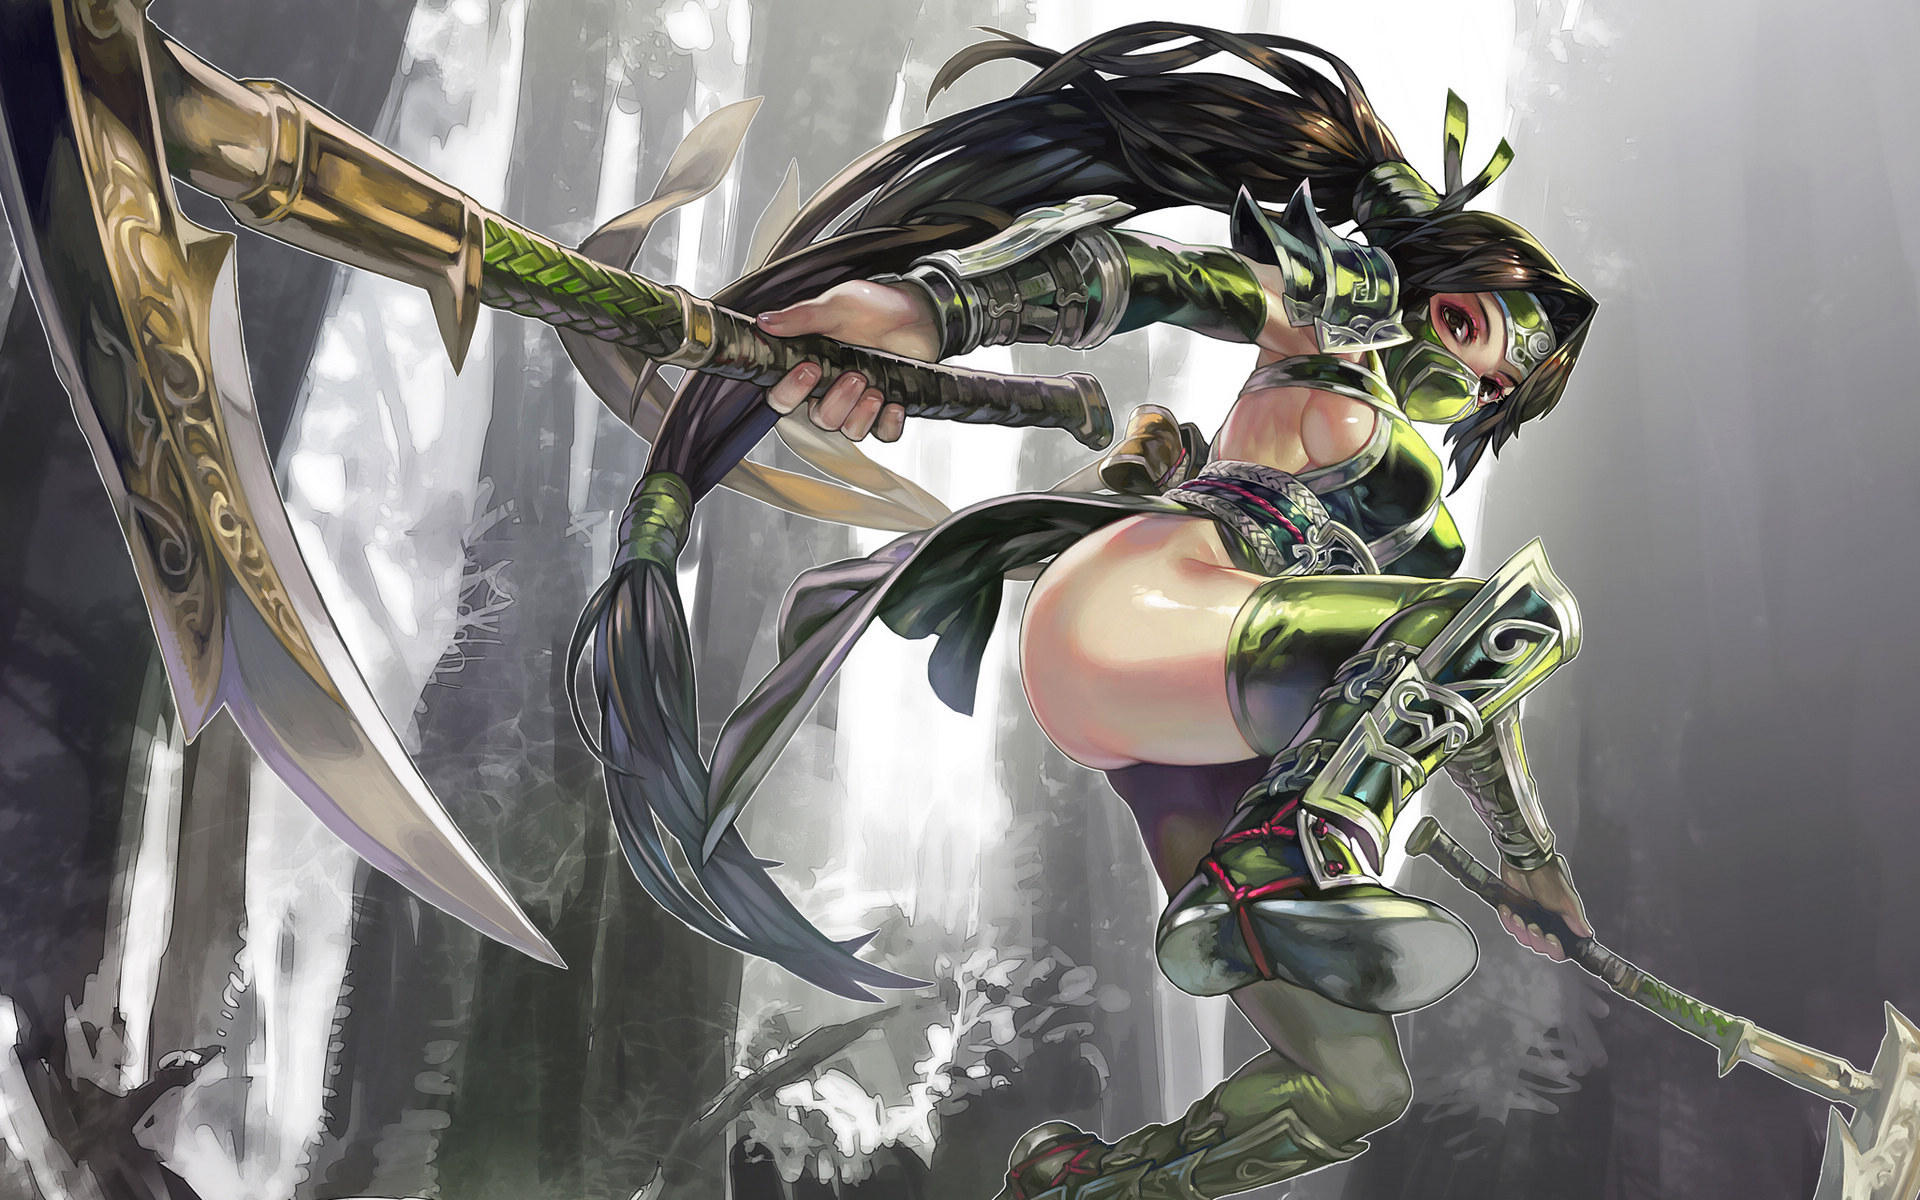 Akali League Of Legends Wallpapers Art Of Lol